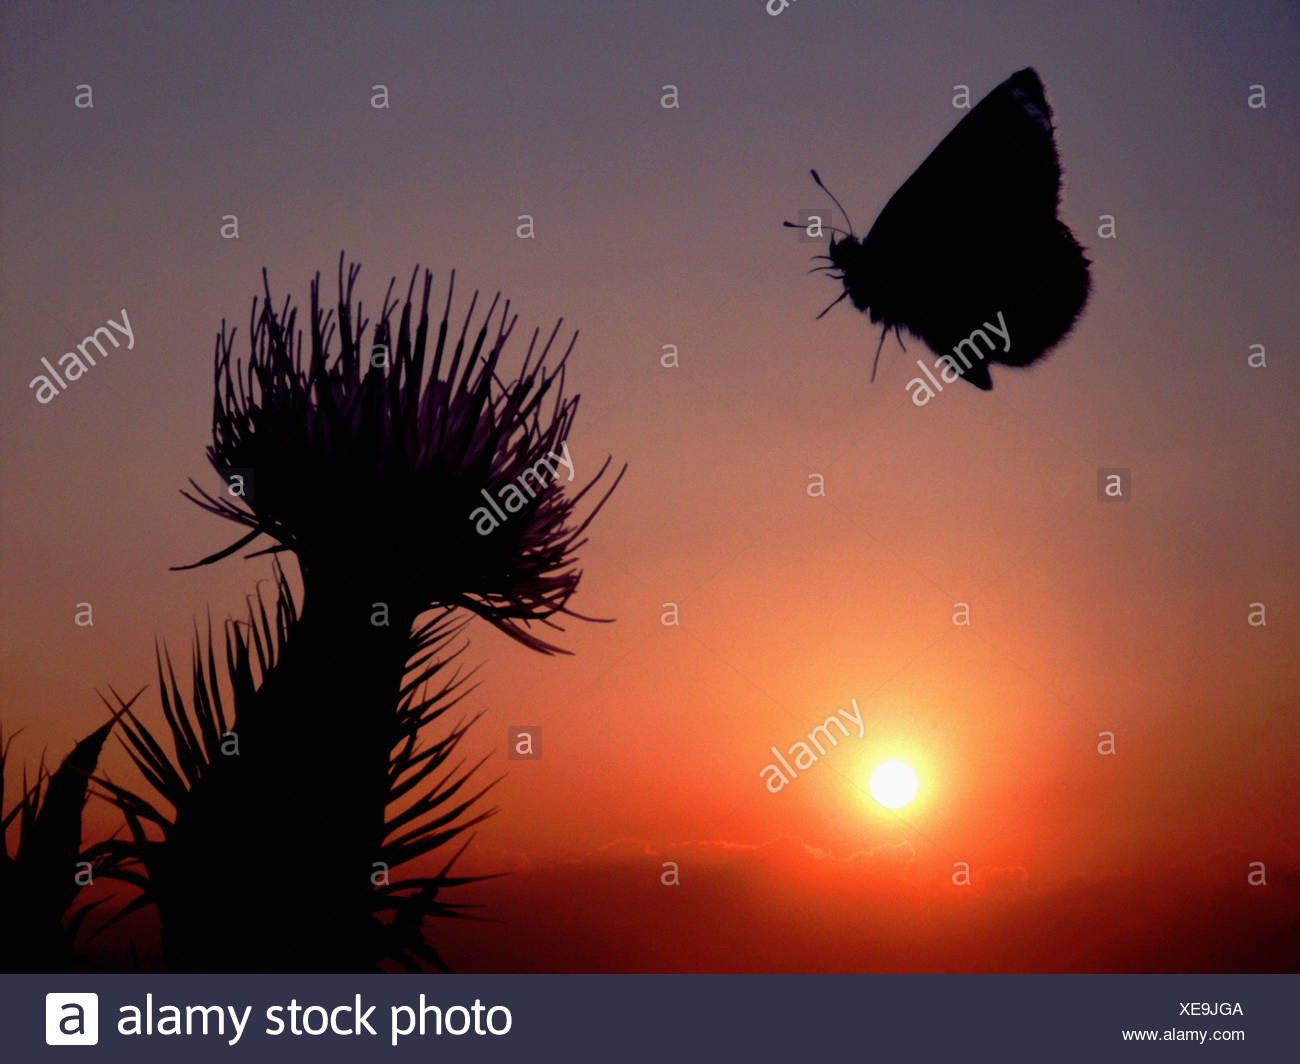 Butterlfy at sunset - Stock Image